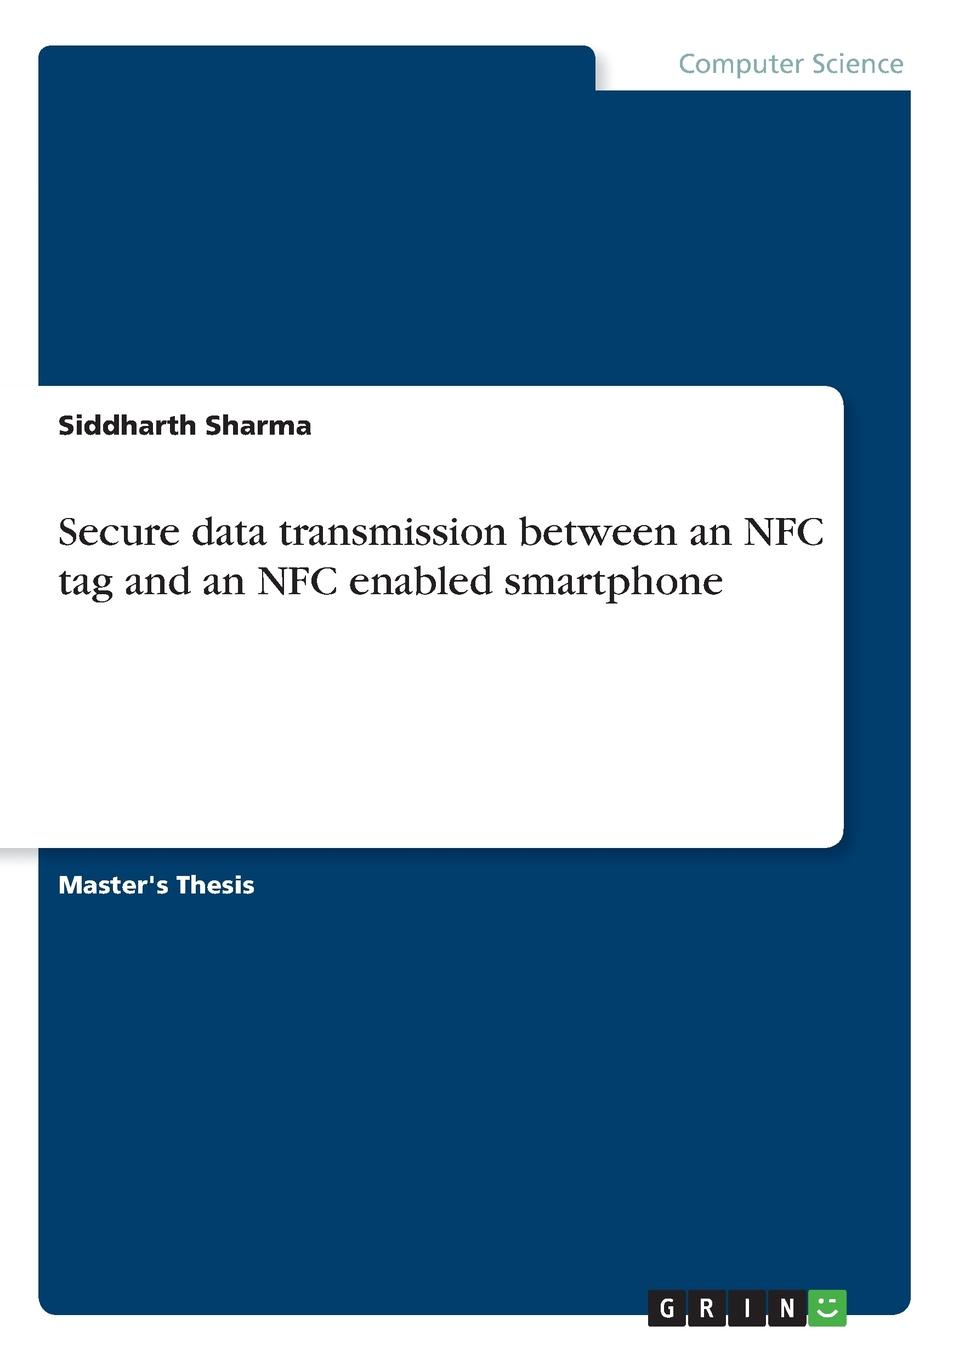 Siddharth Sharma Secure data transmission between an NFC tag and an NFC enabled smartphone 6pcs lot ntag213 nfc tags rfid adhesive label sticker compatible with all nfc products dia 30mm